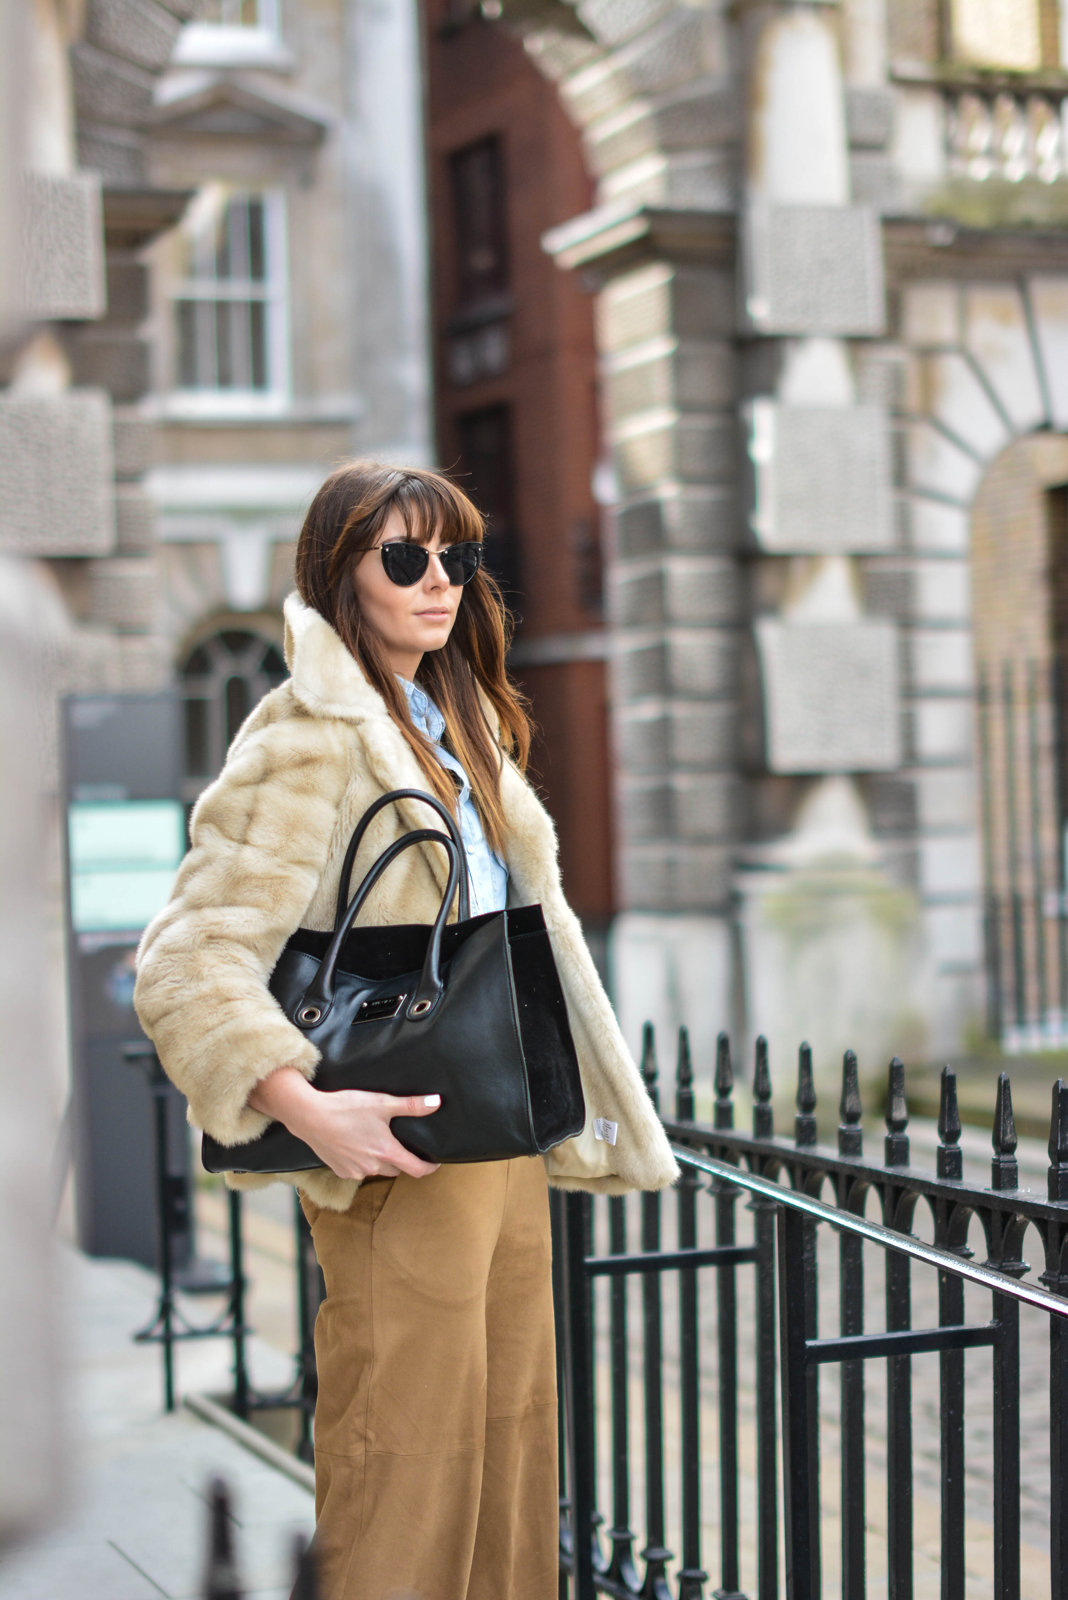 EJSTYLE - Emma Hill, London Fashion Week, LFW AW15, street style, 70's style, Denim shirt, suede culottes, jimmy choo bag, vintage faux fur coat